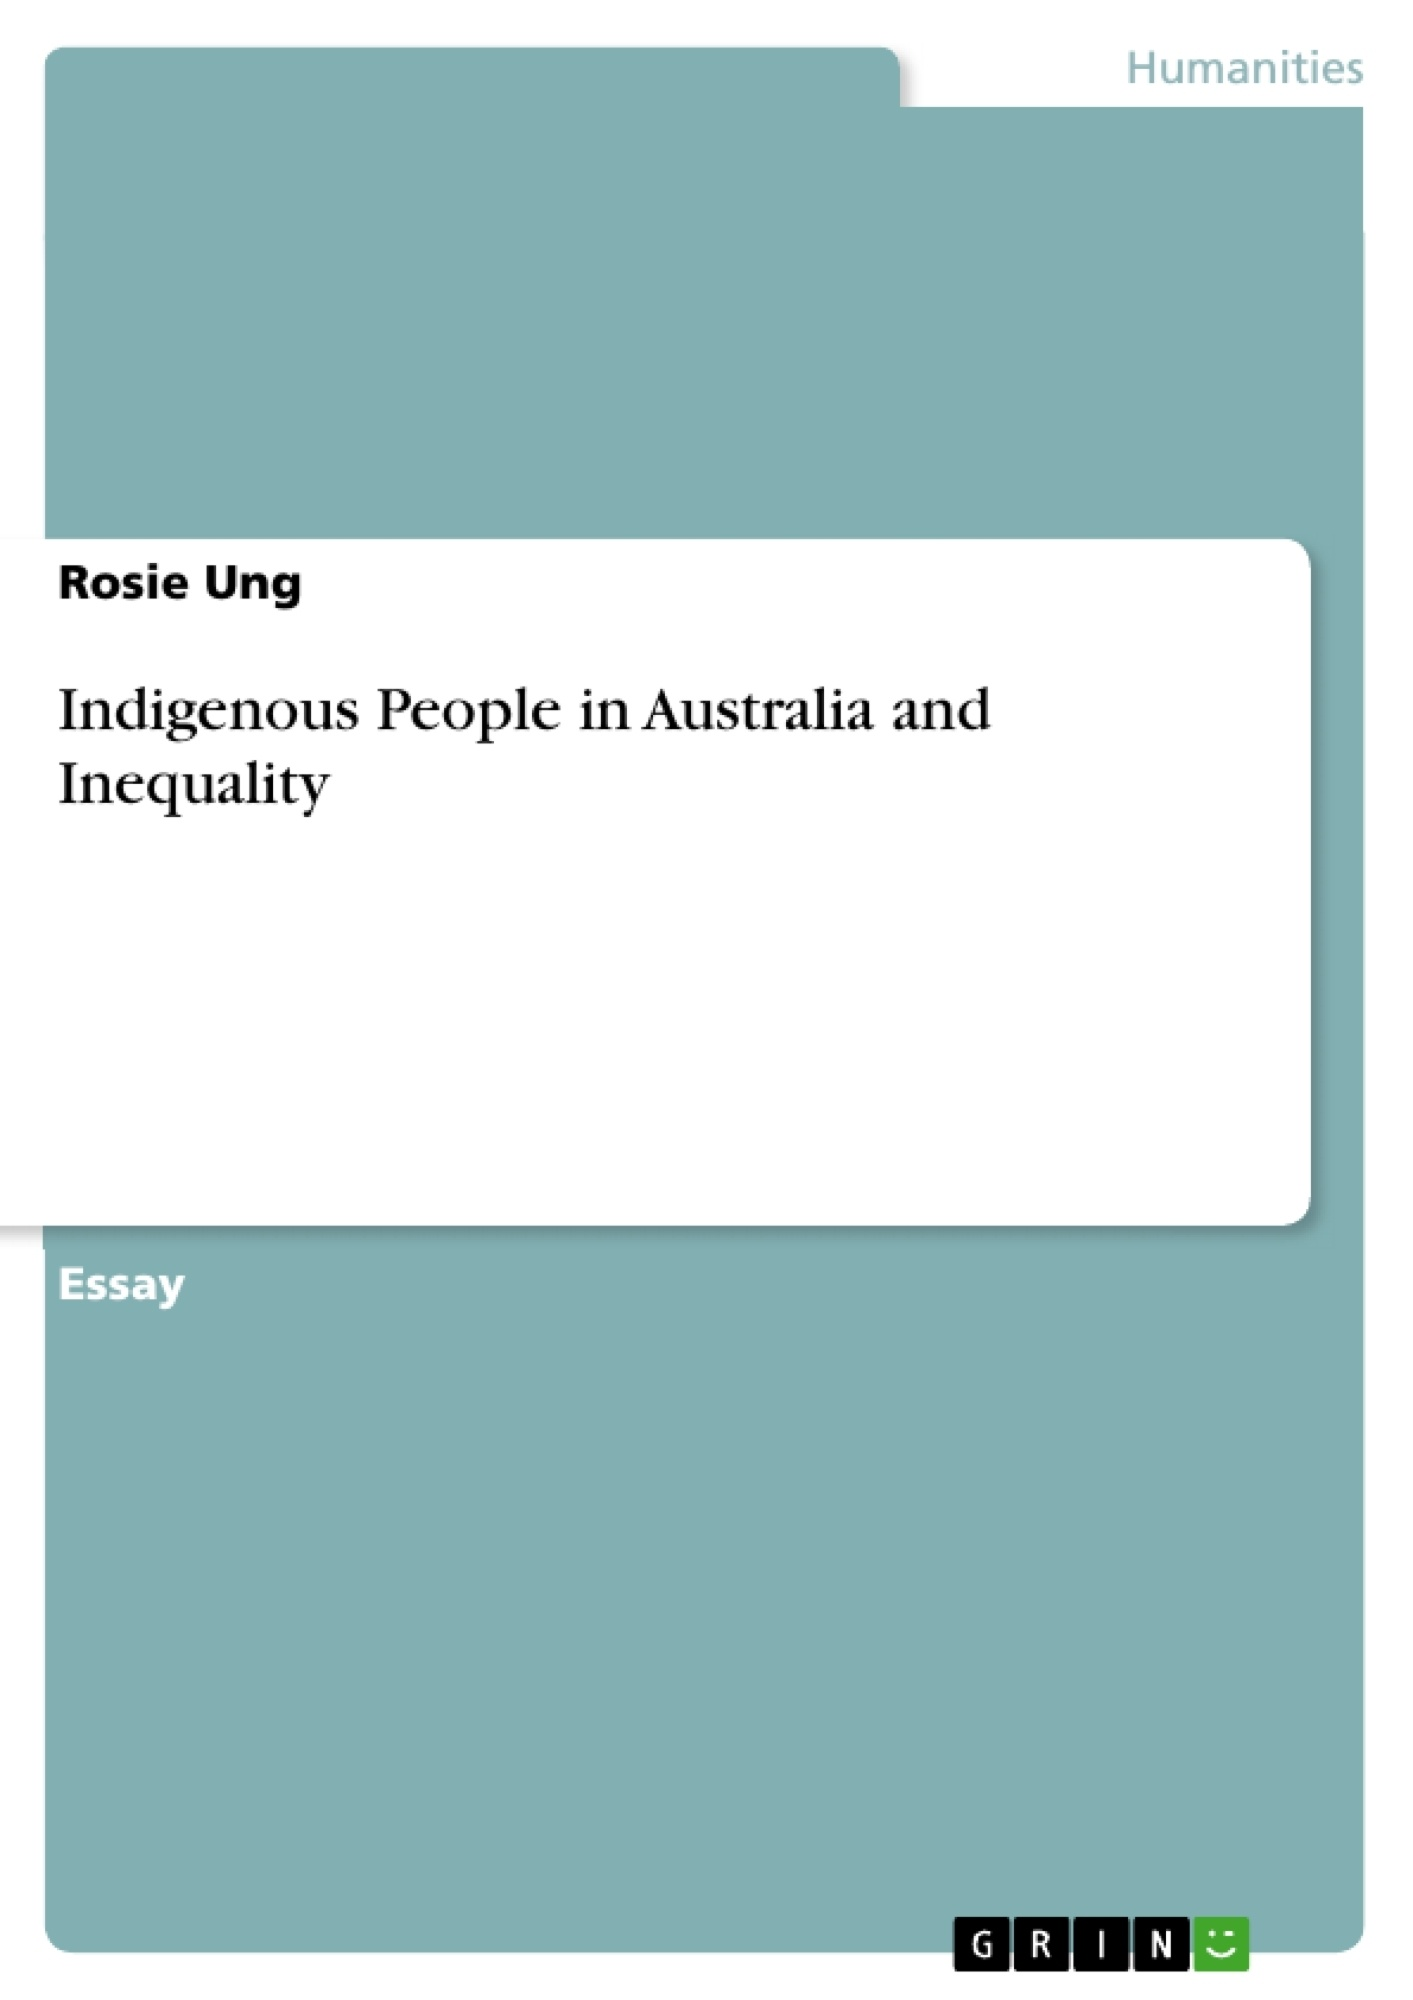 Title: Indigenous People in Australia and Inequality